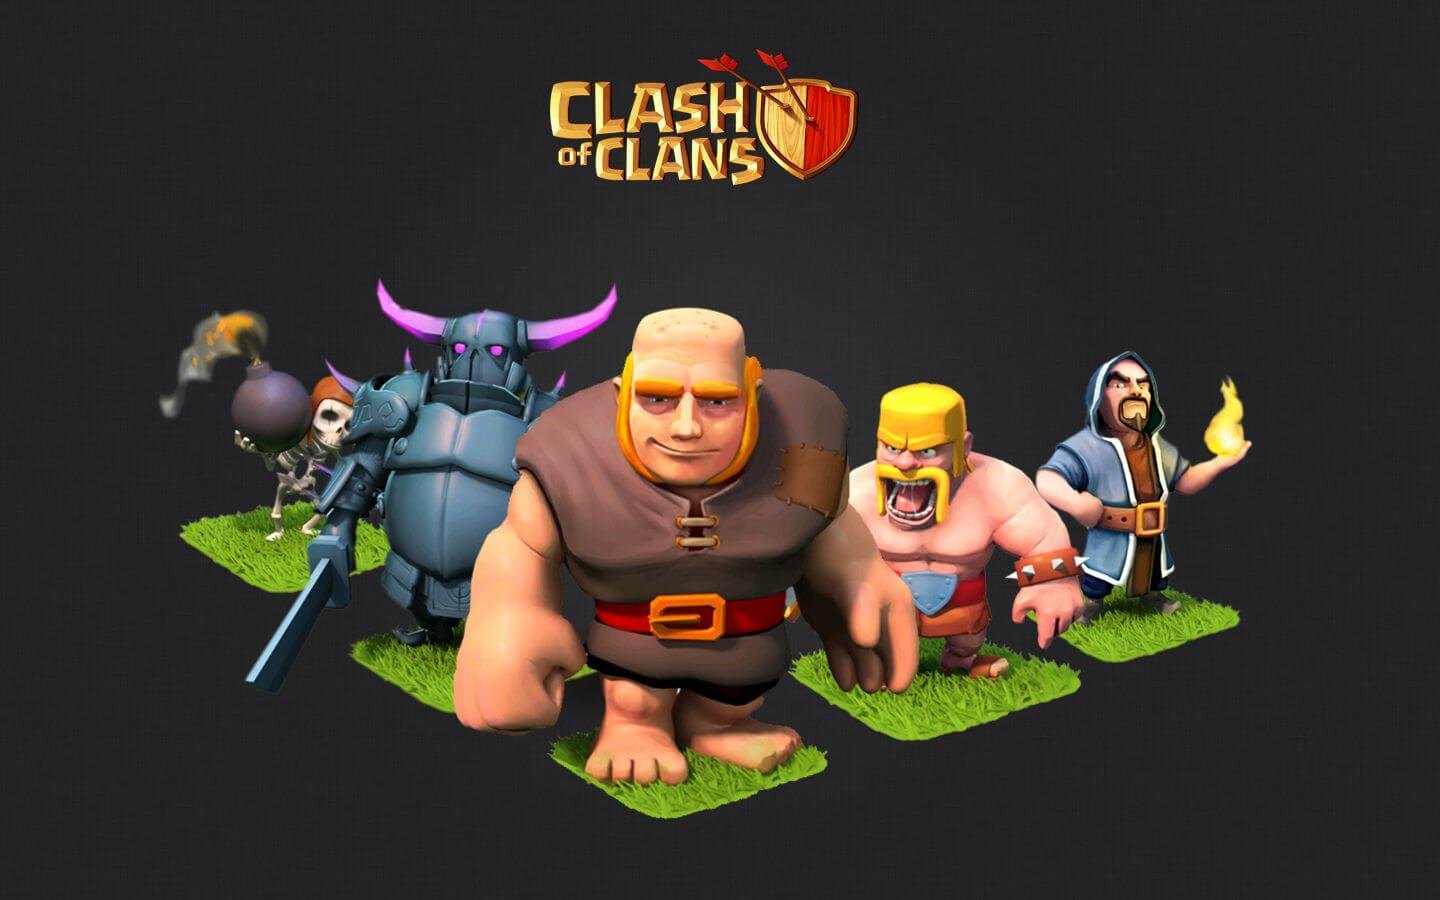 Clash of Clans Characters Wallpaper